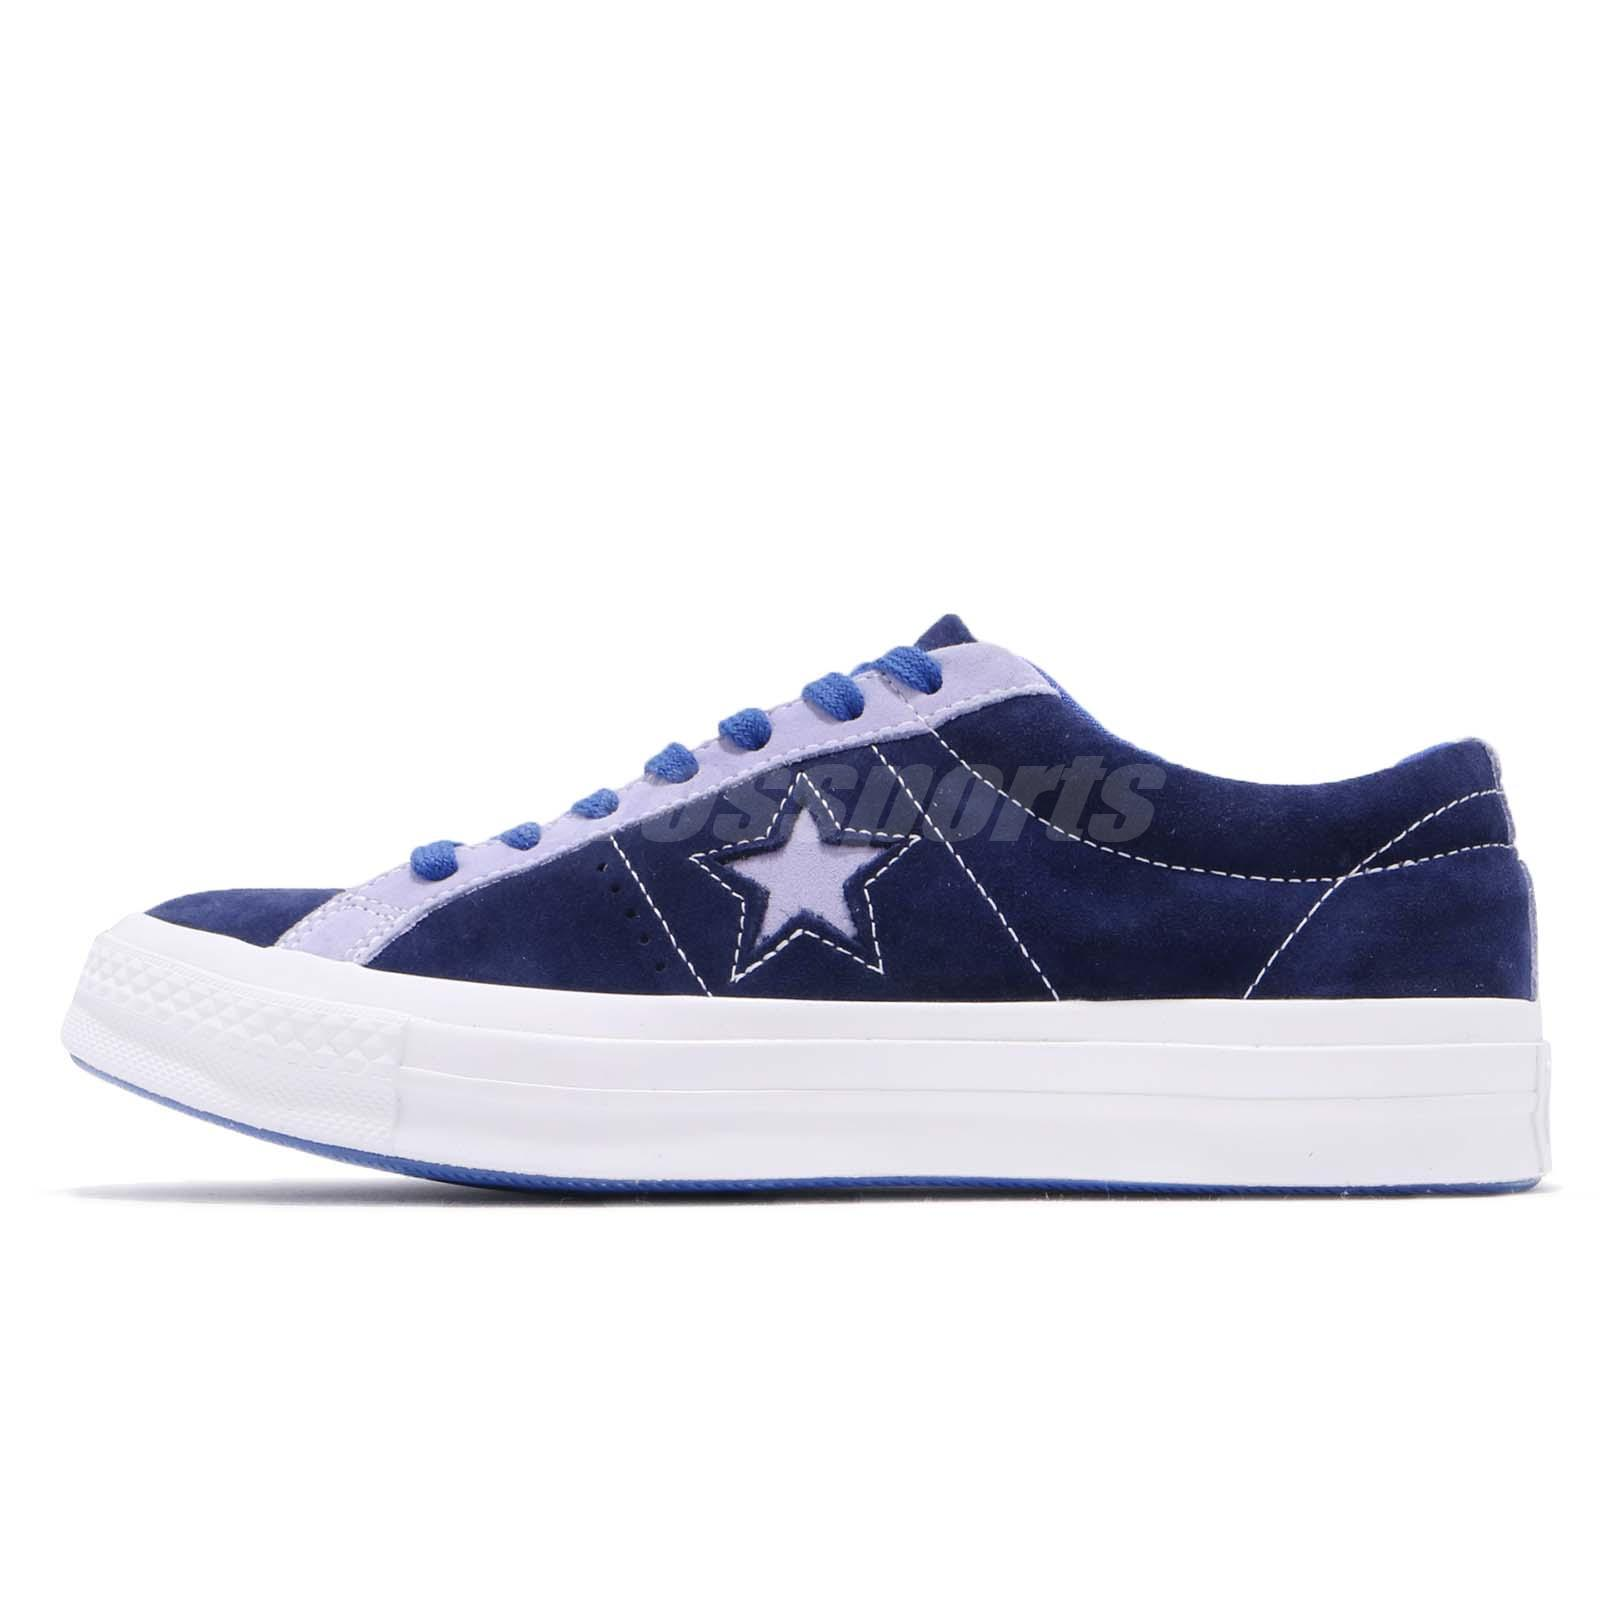 Converse One Star Navy Purple White Suede Men Women Casual Shoes Sneaker  161615C f394d1b8a03